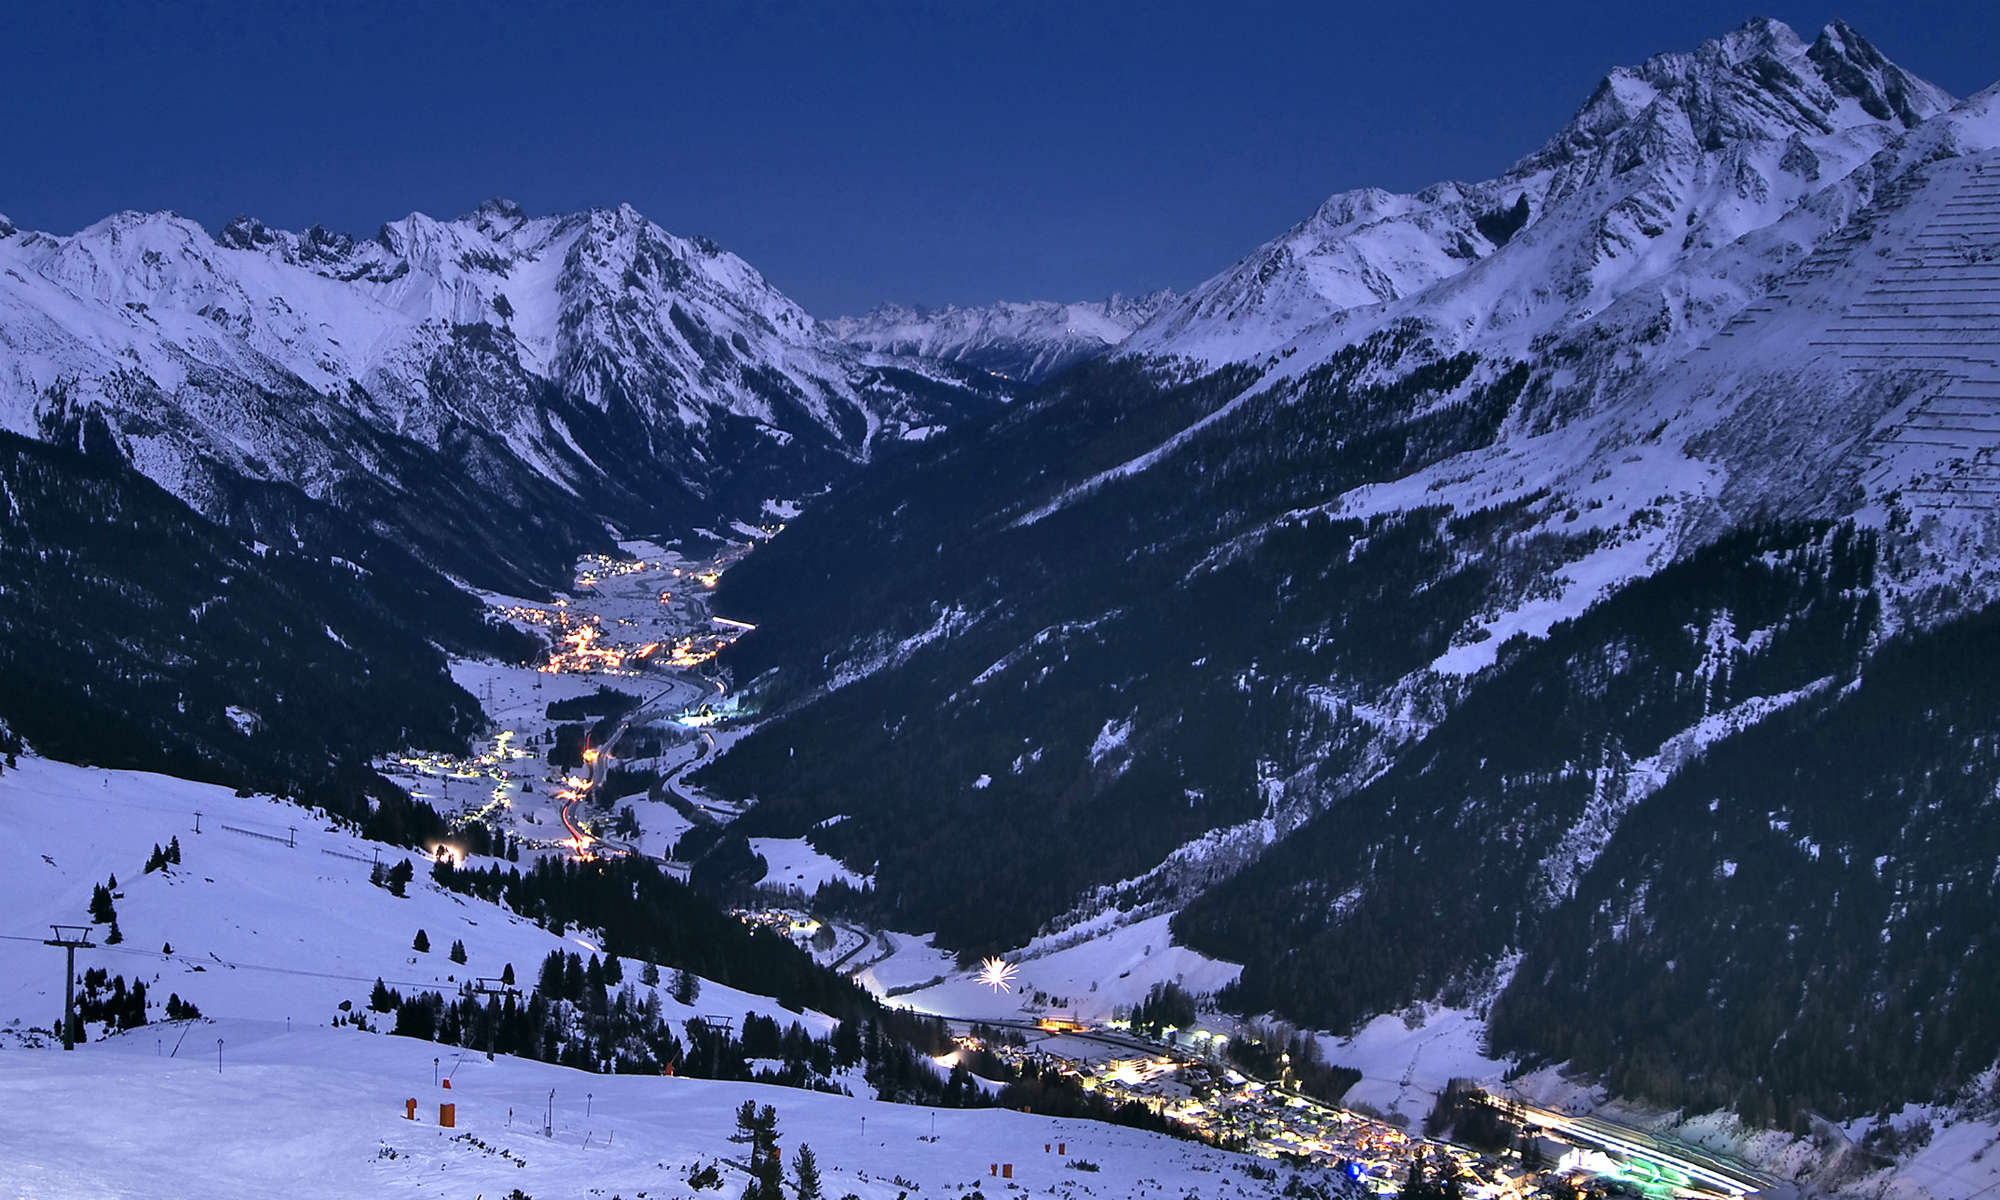 Night view of St Anton from the Galzig mountain.